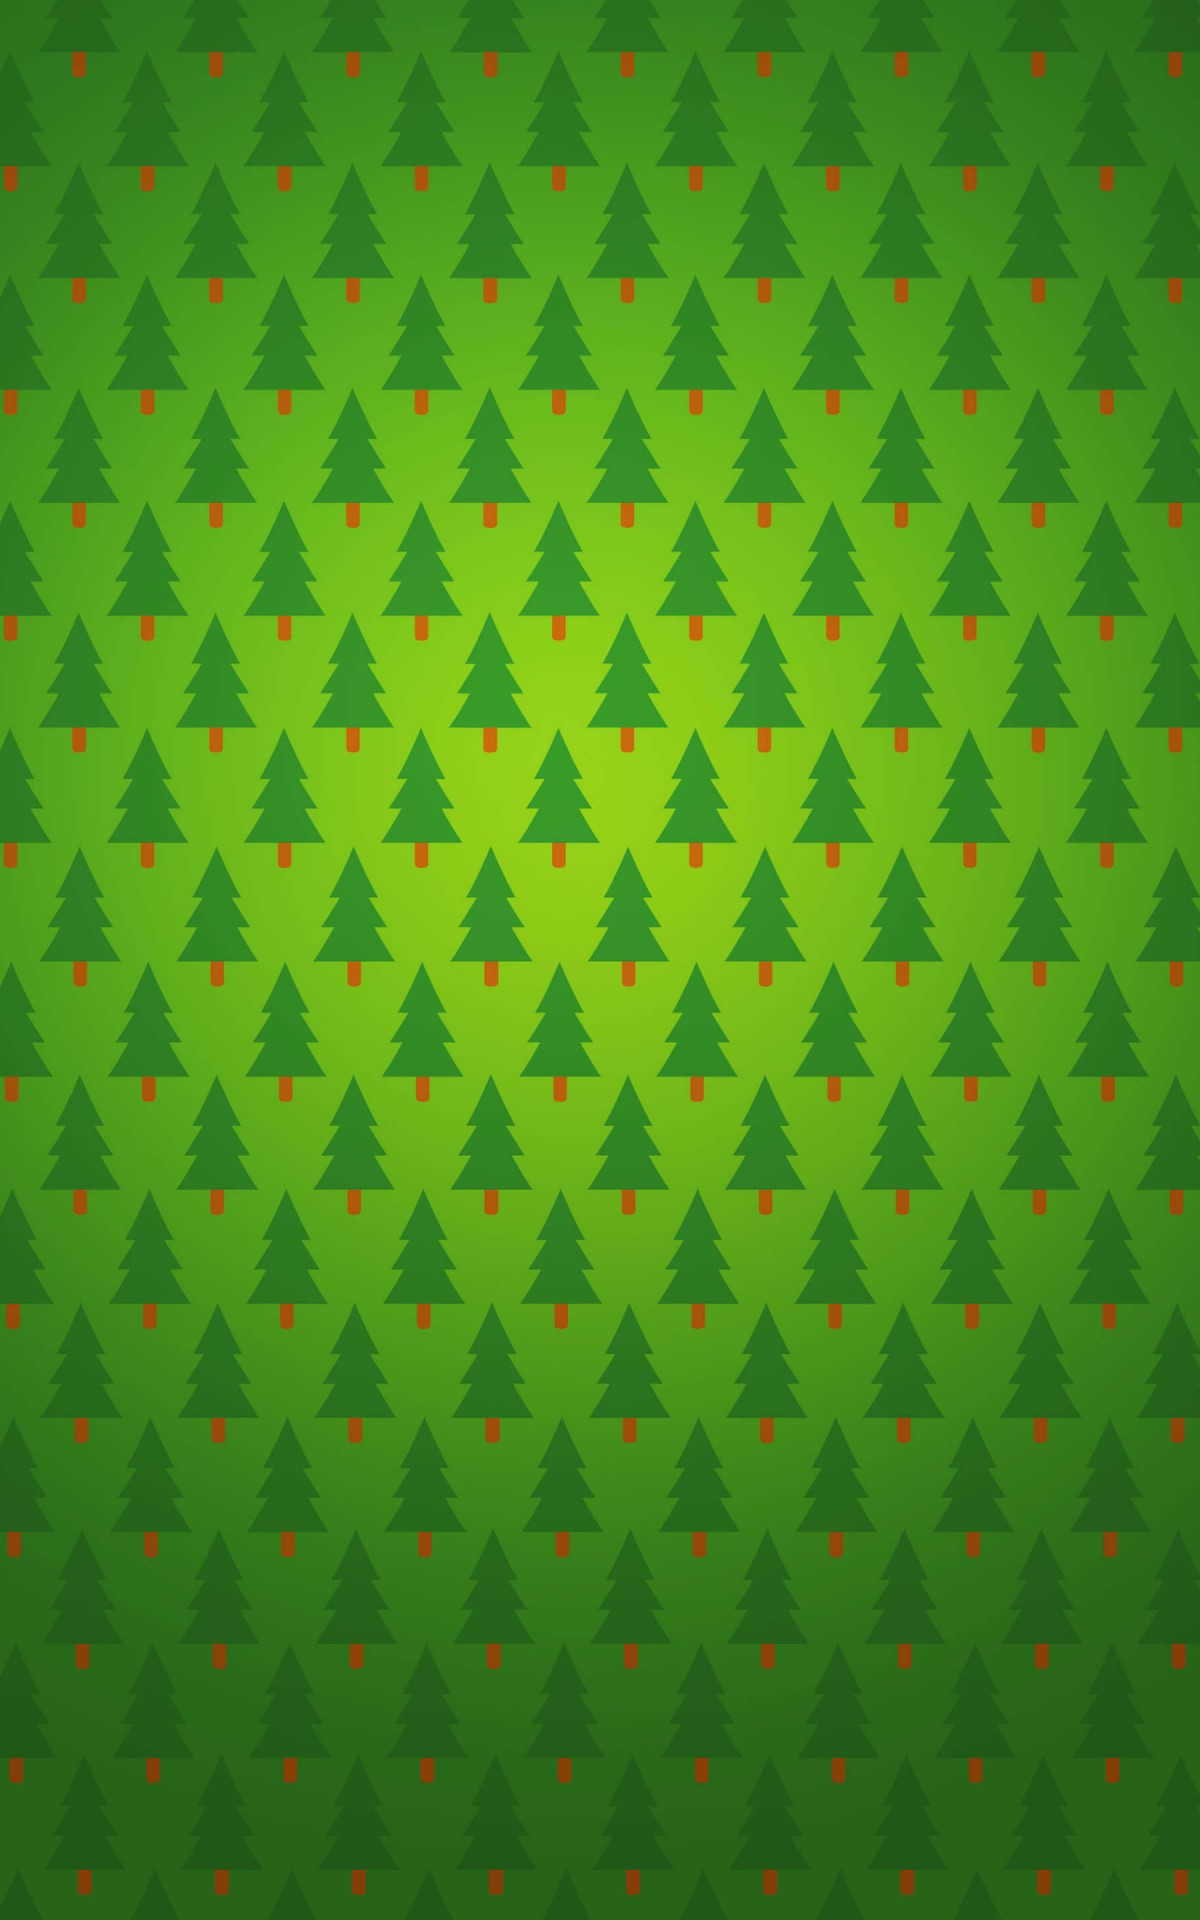 Tree Pattern HD wallpaper for Kindle Fire HDX   HDwallpapersnet 1200x1920